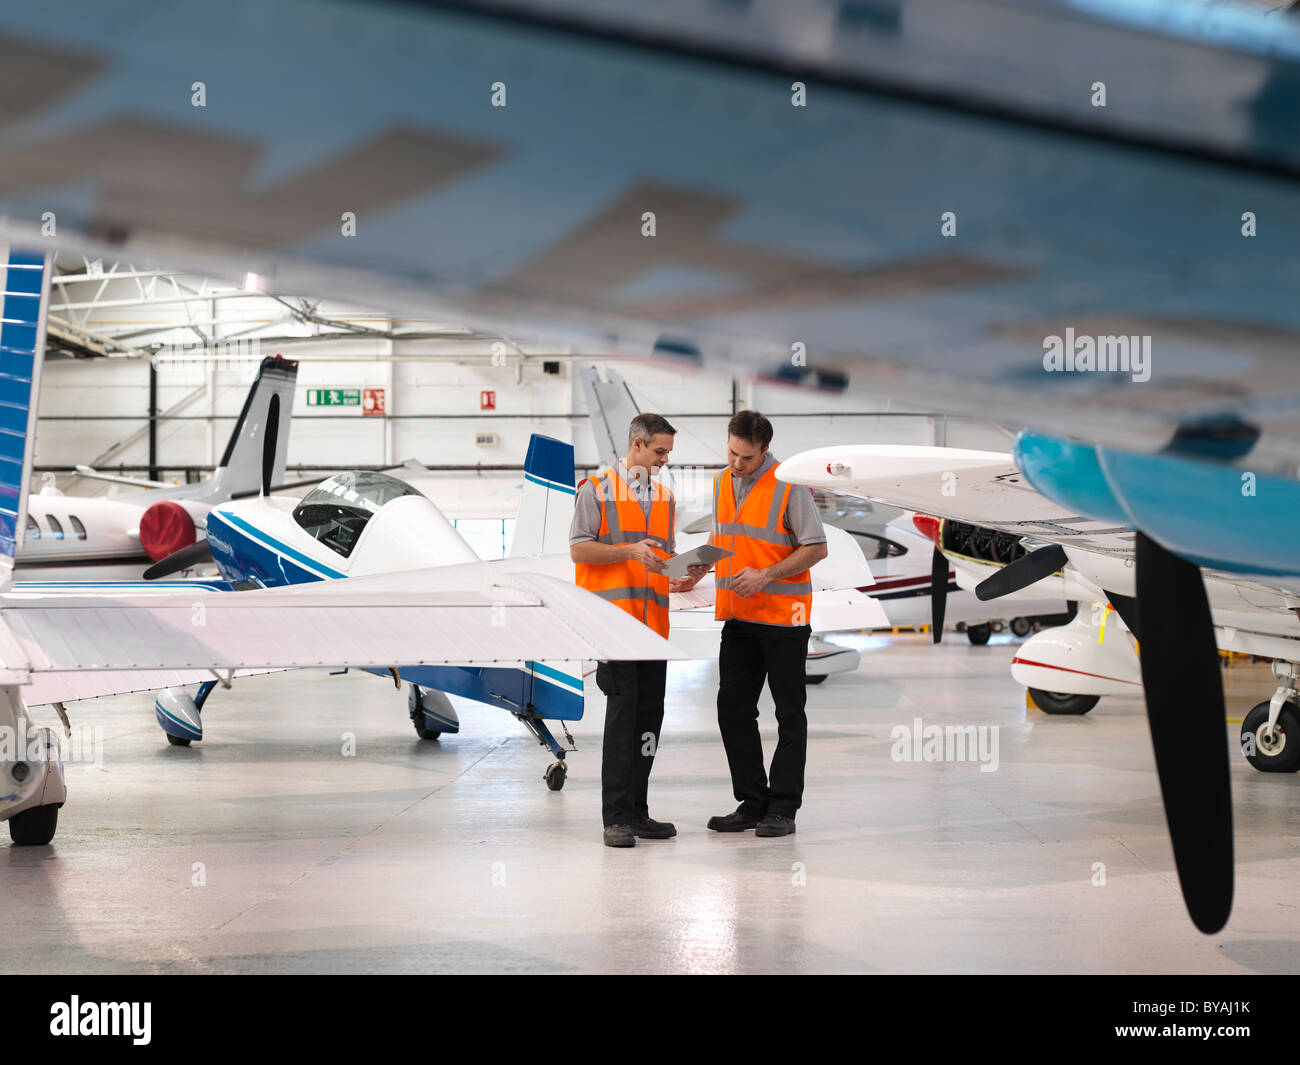 Engineers inspect turbo-prop aircraft - Stock Image